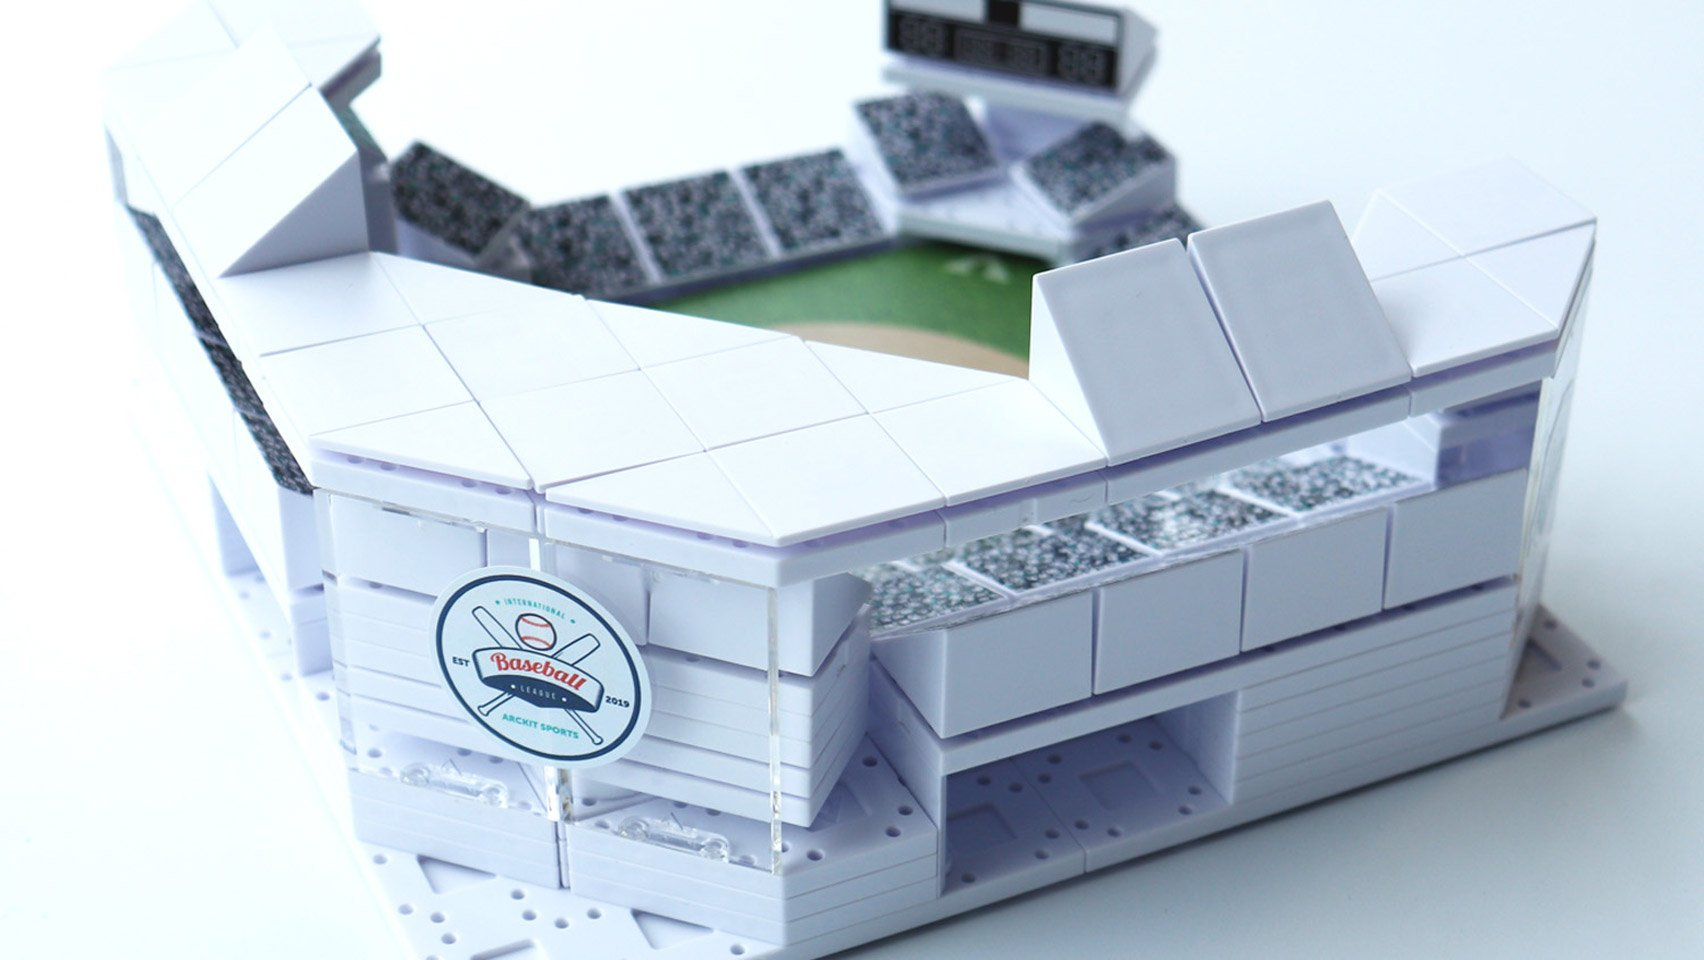 Architectural model-building kit of sports stadiums by Arckit